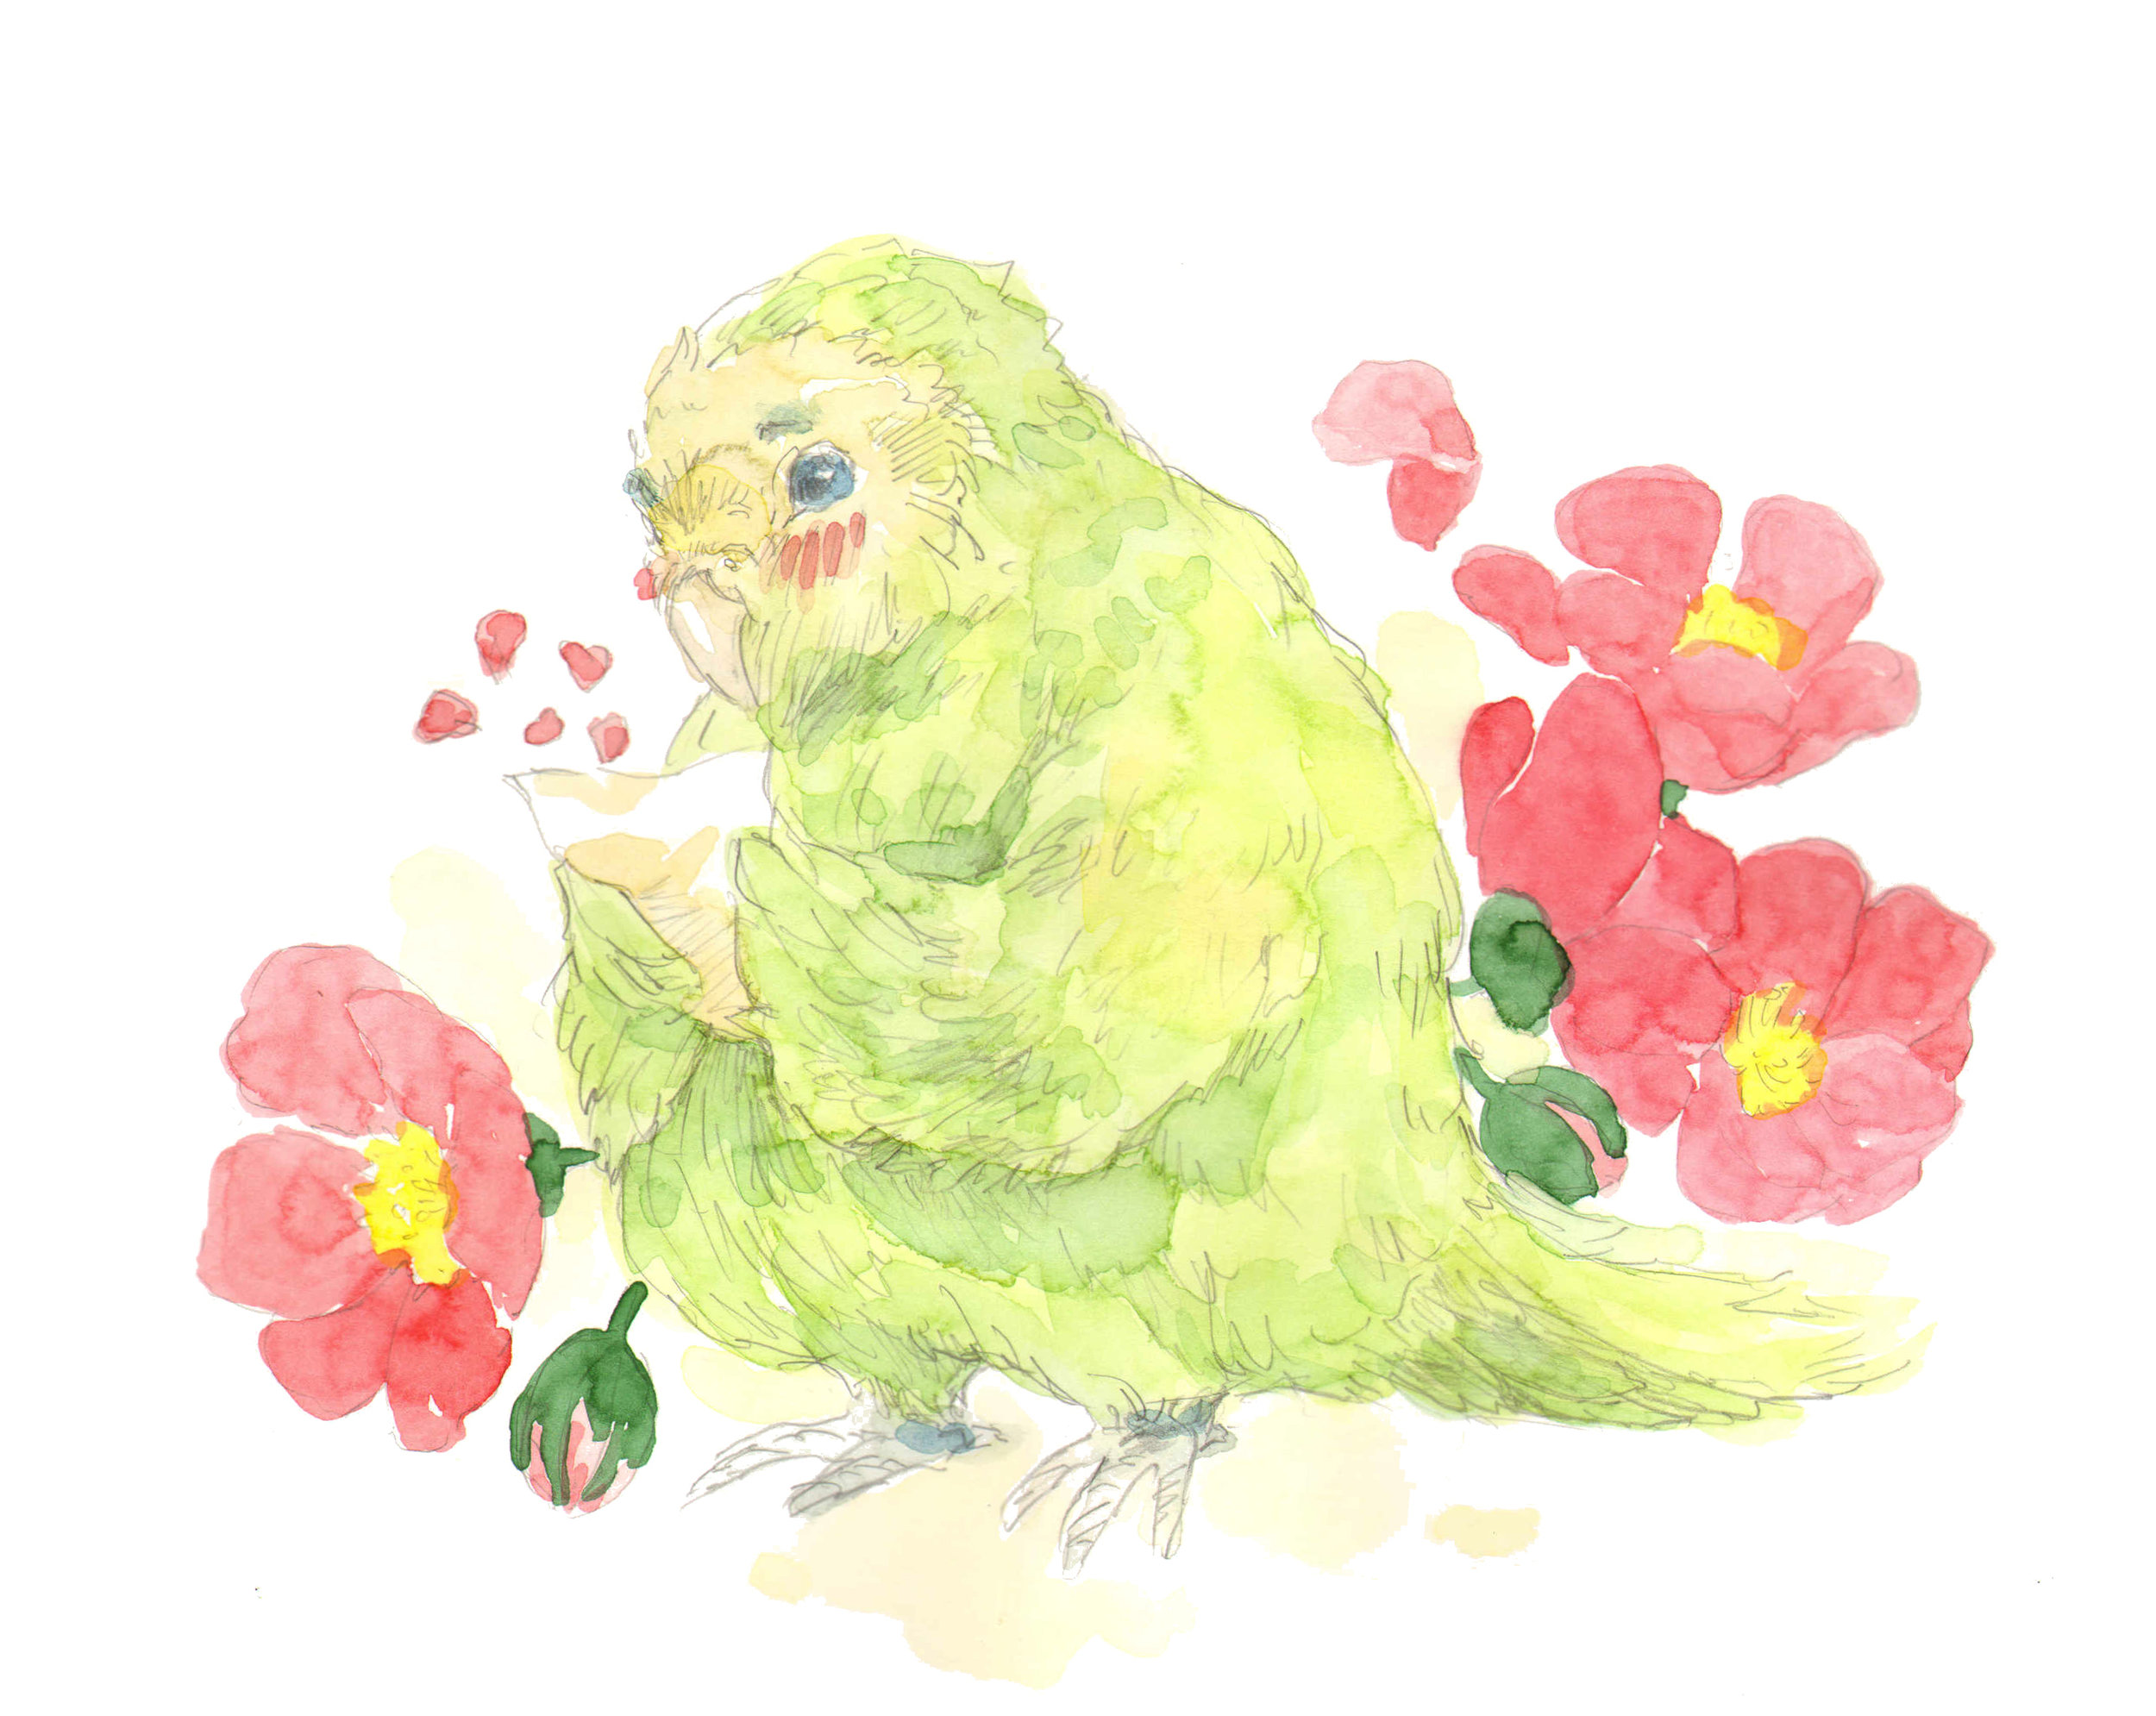 Kakapo Parrot in Love by Lucy Kagan